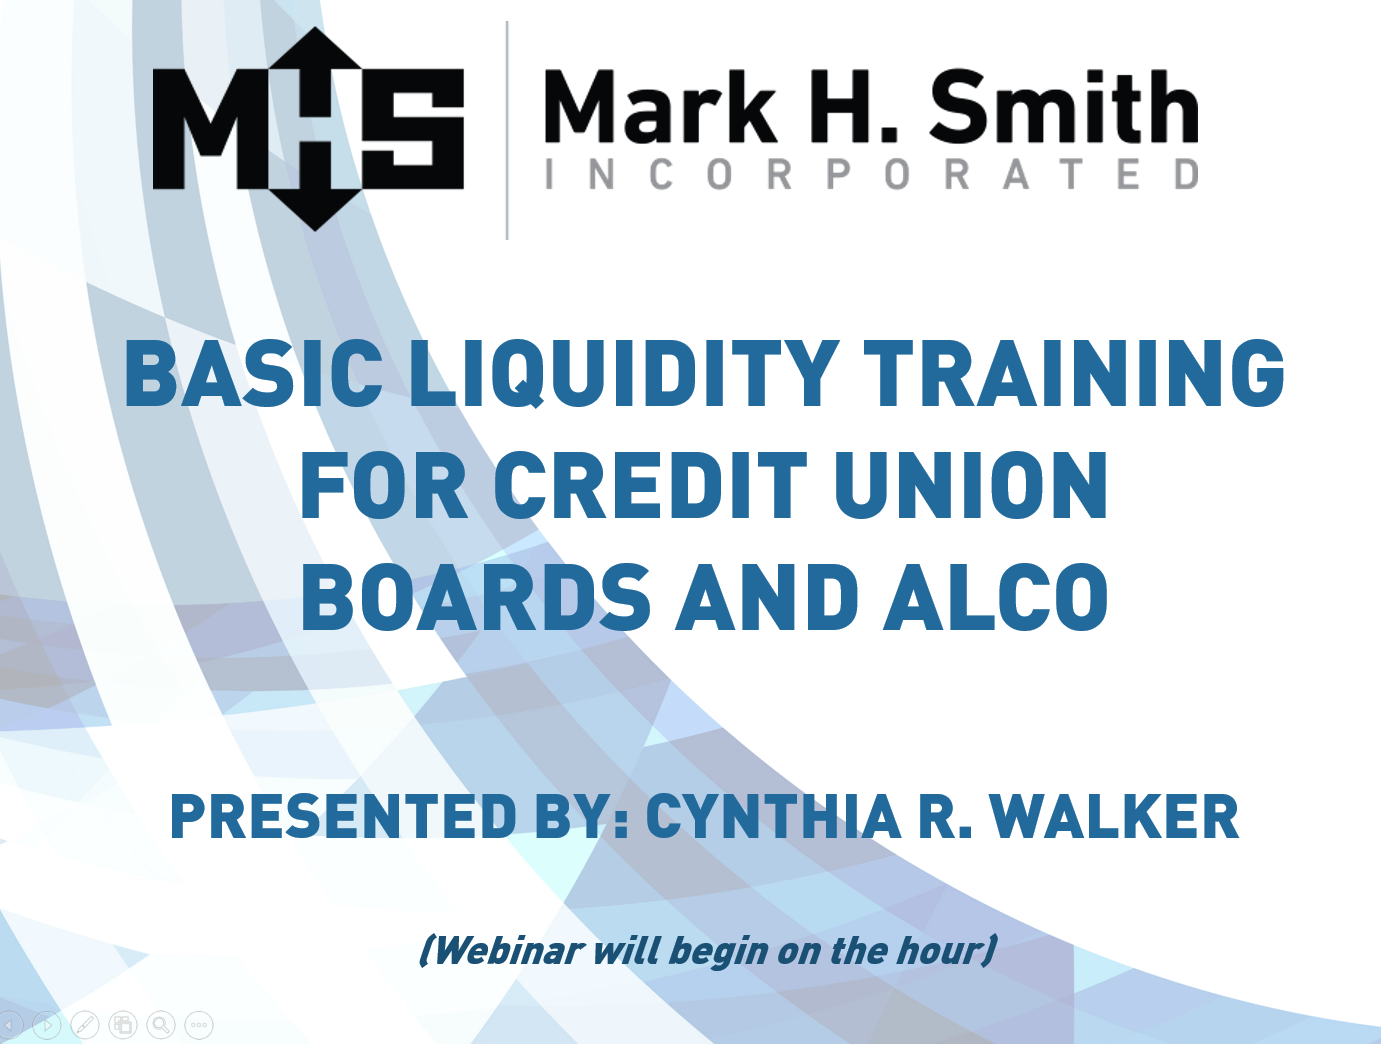 Basic Liquidity Training for Credit Unions Boards and ALCO